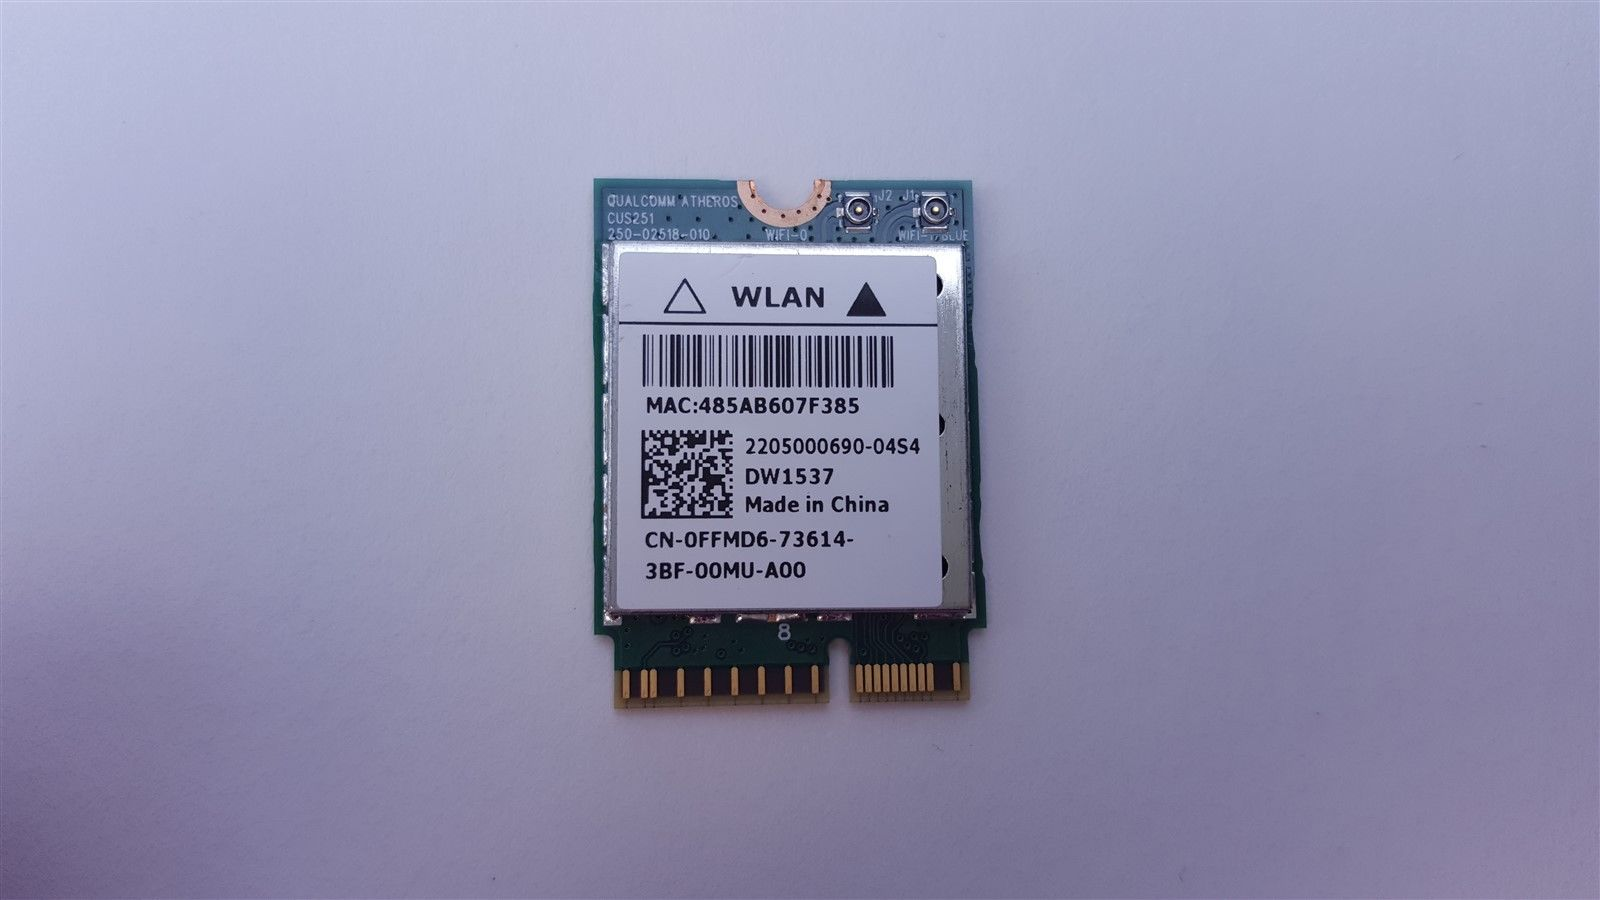 Dell Wireless DW1537 WiFi Wireless Card Bluetooth 4.0 m.2 FFMD6 0FFMD6